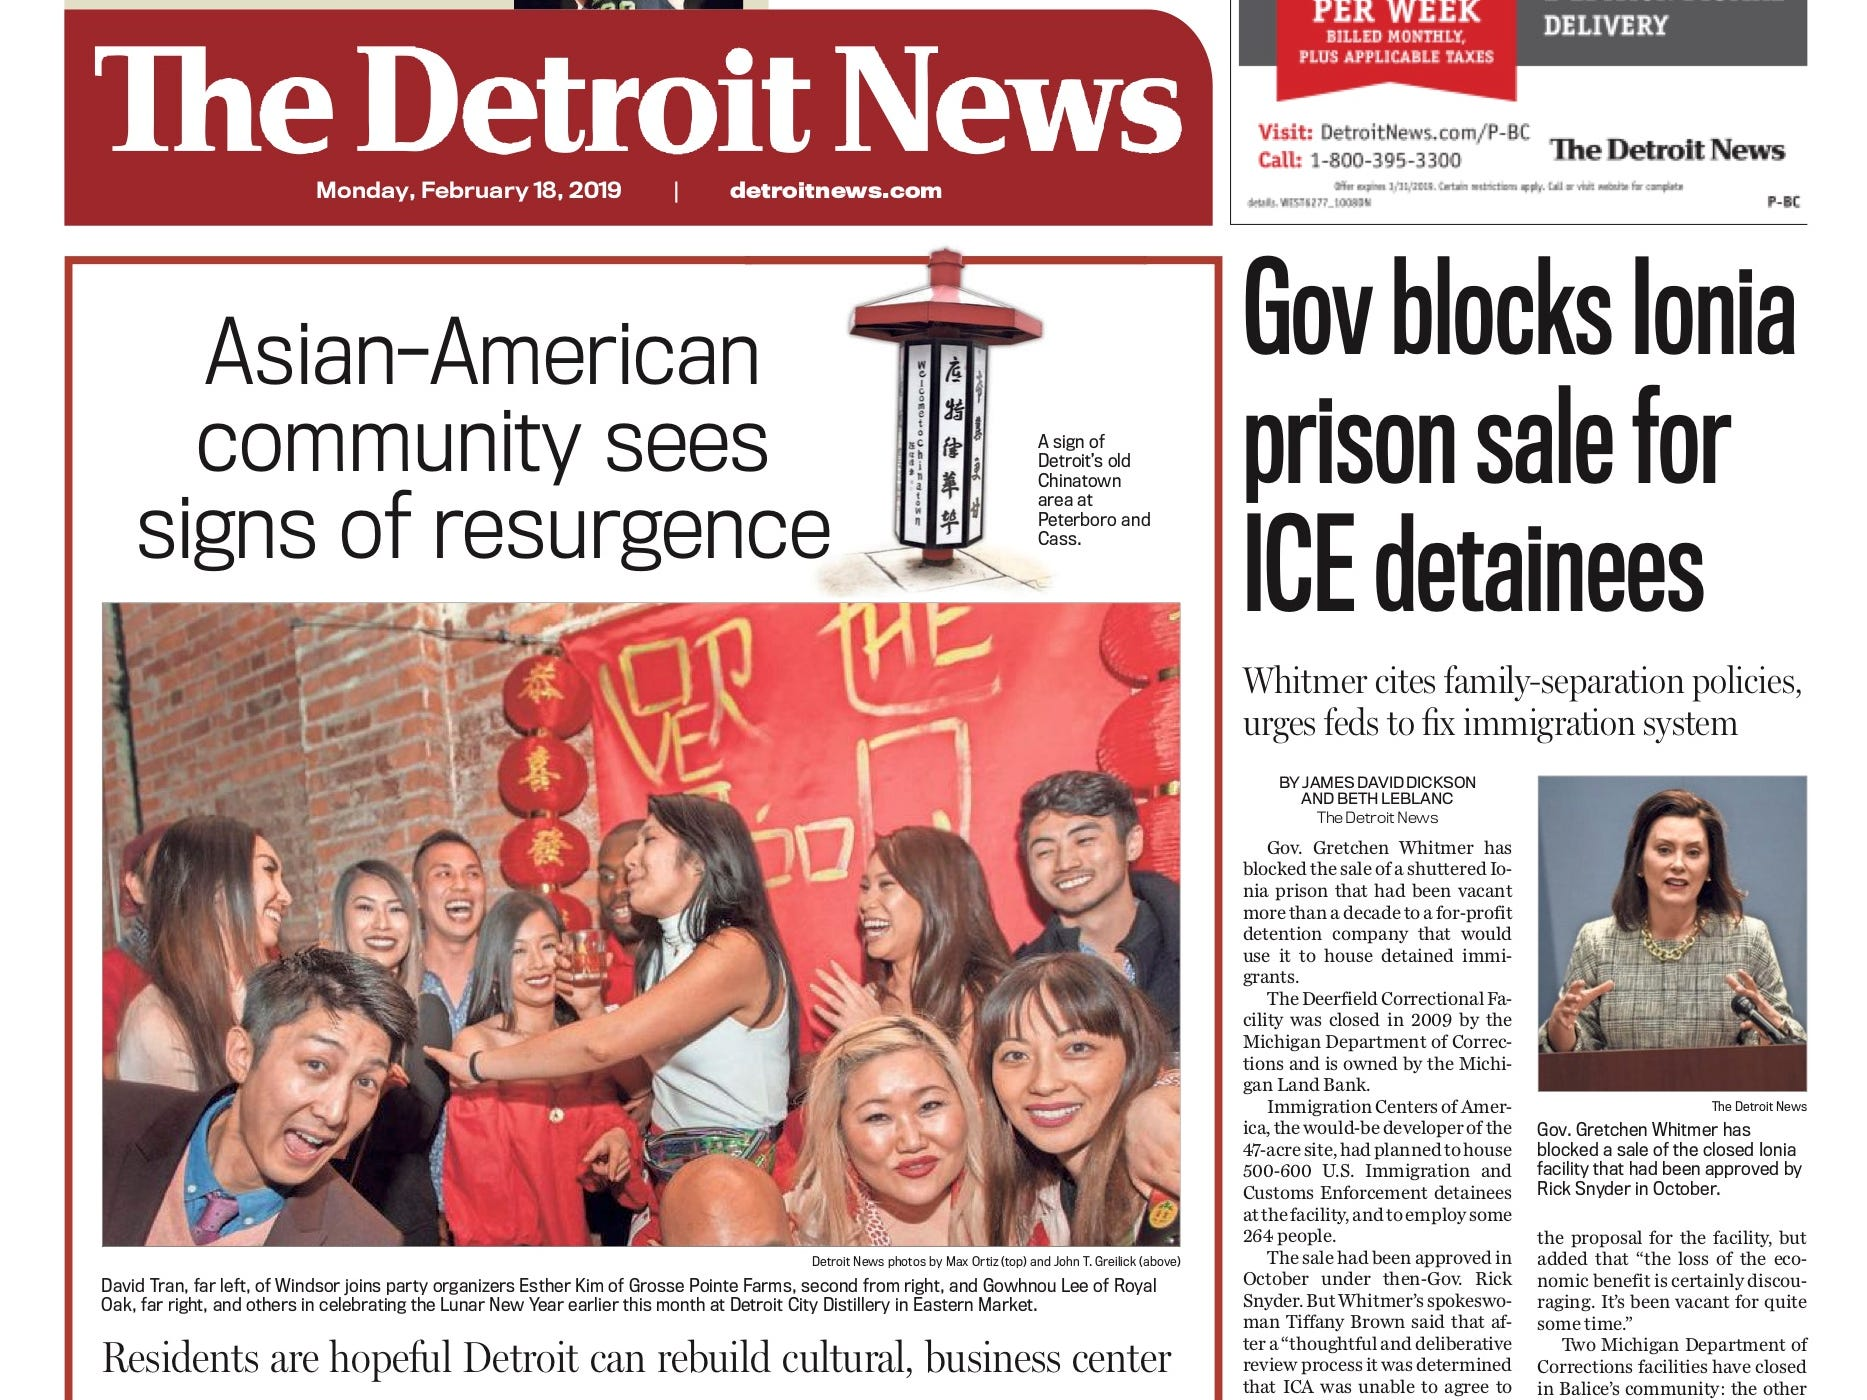 The front page of the Detroit News on February 18, 2019.